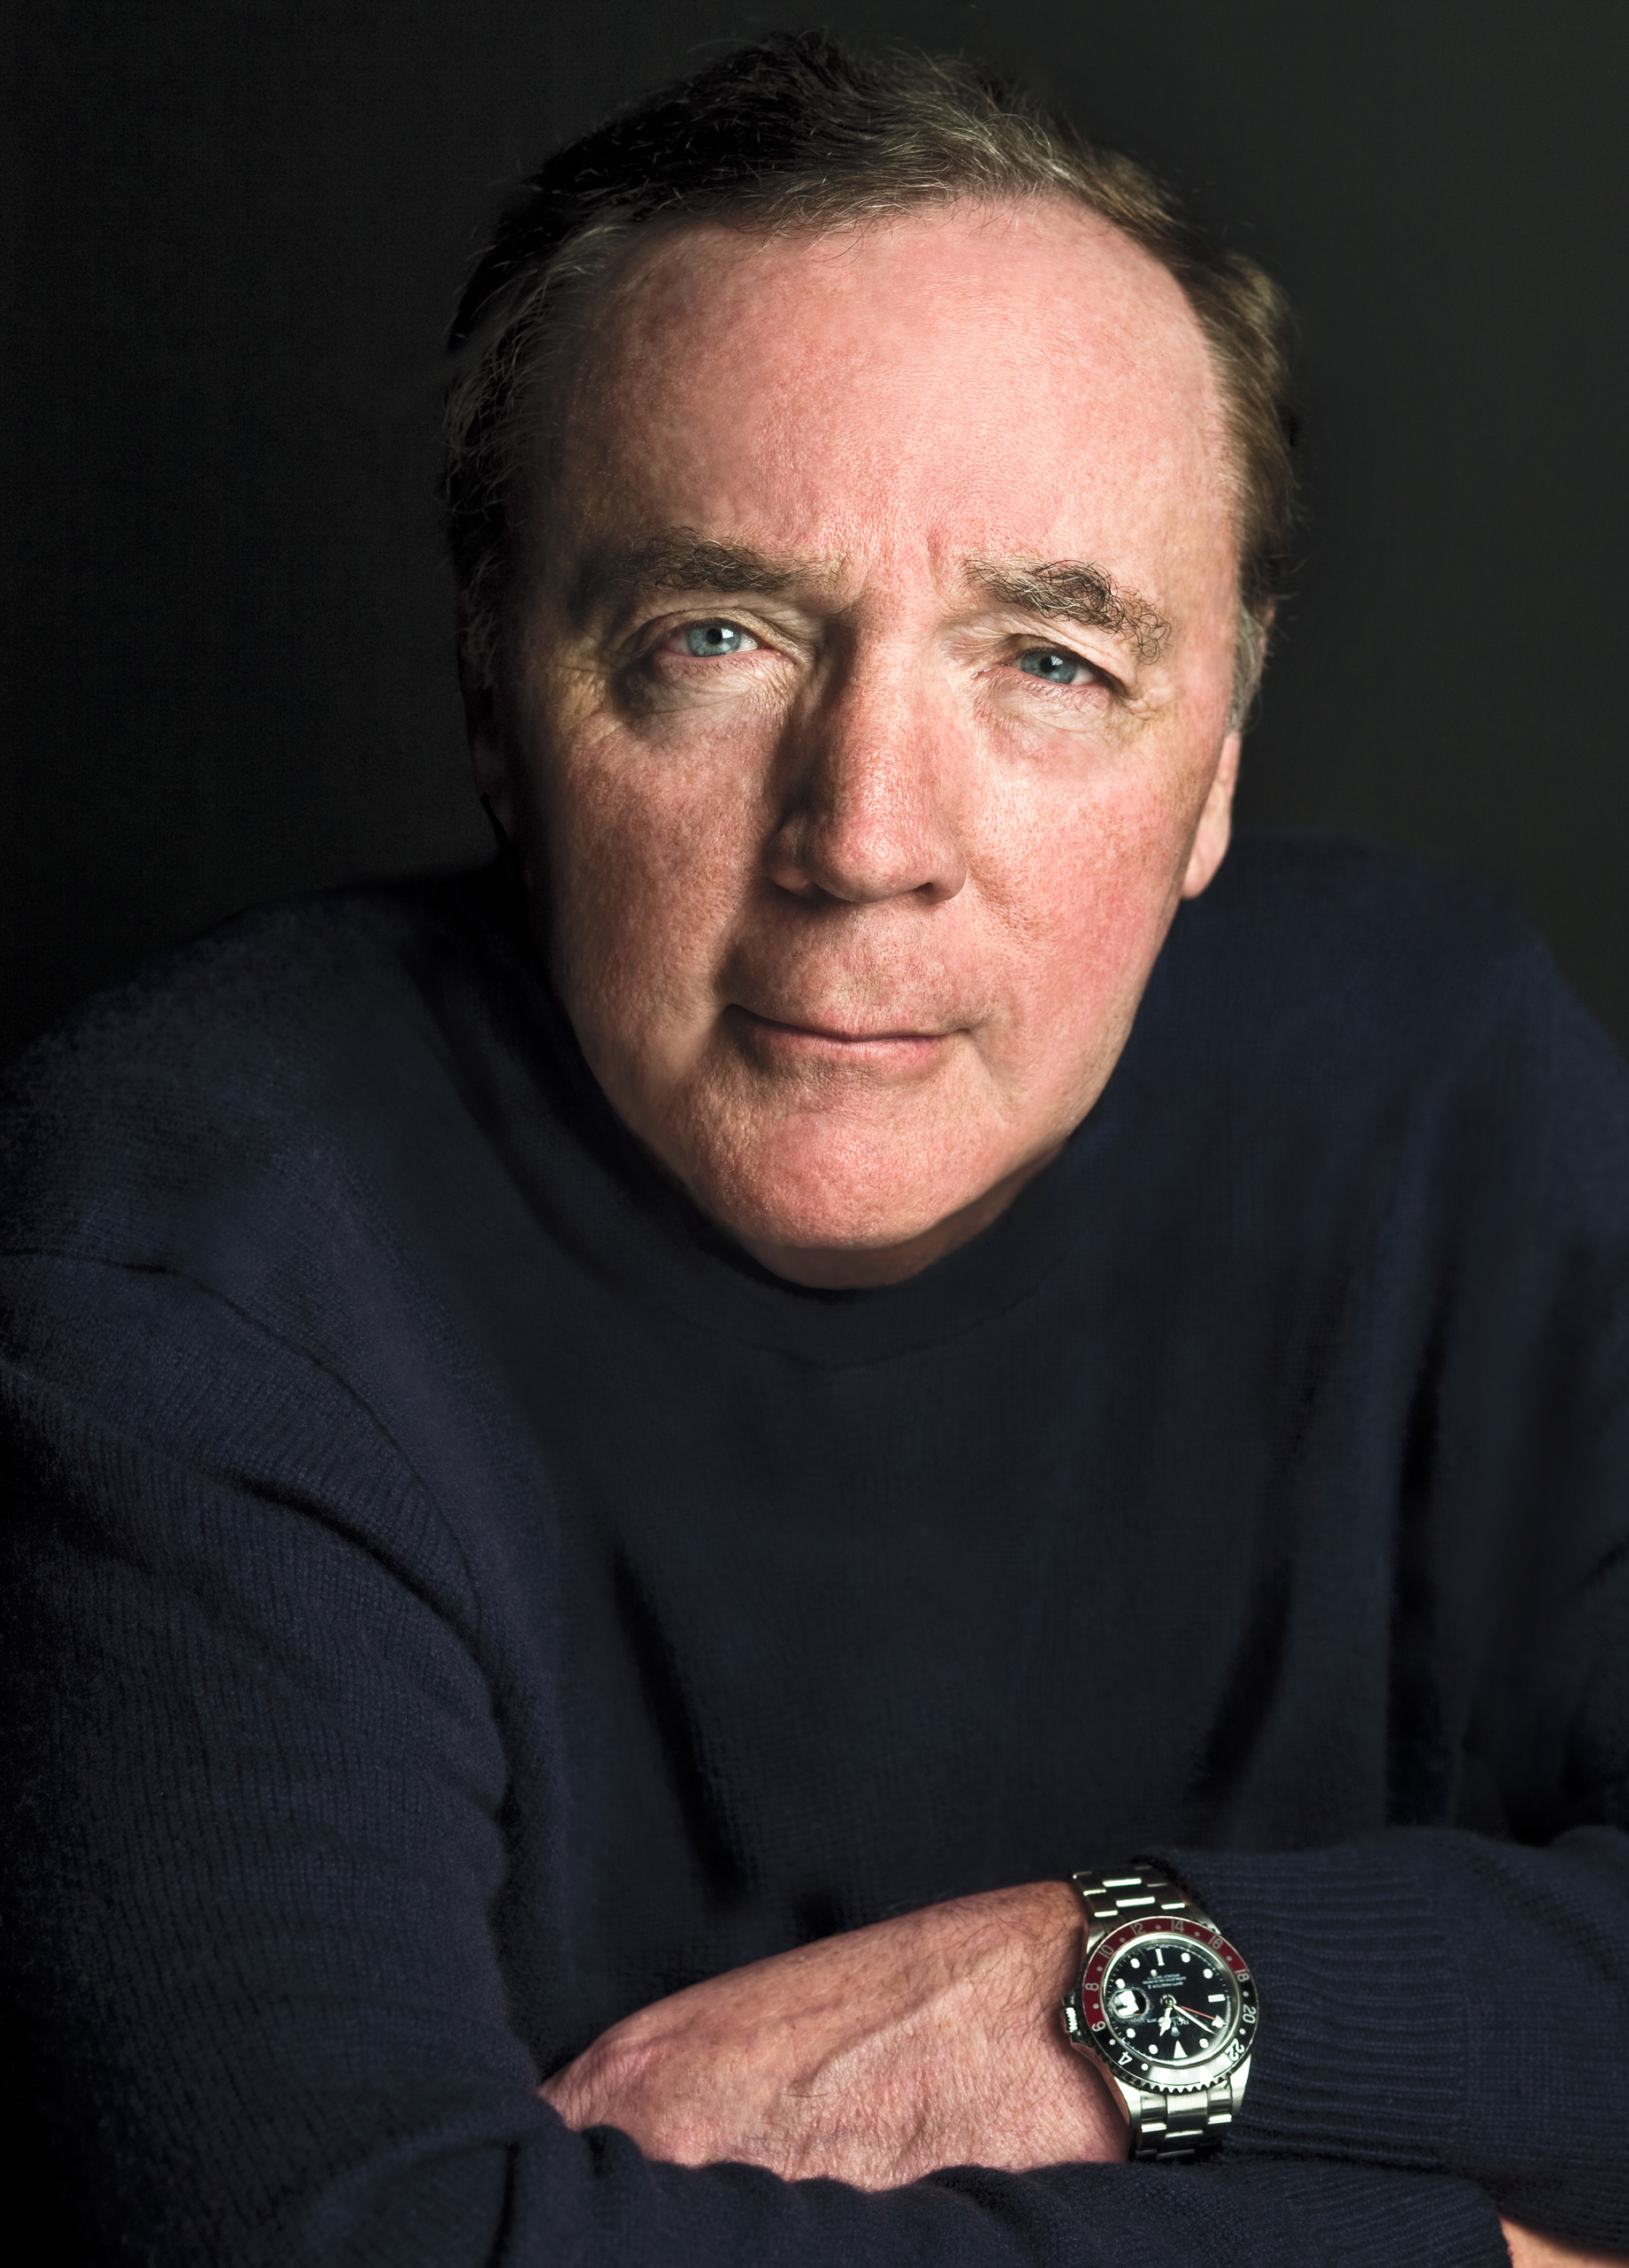 Book News: James Patterson Wants To Give Books To New York City Kids